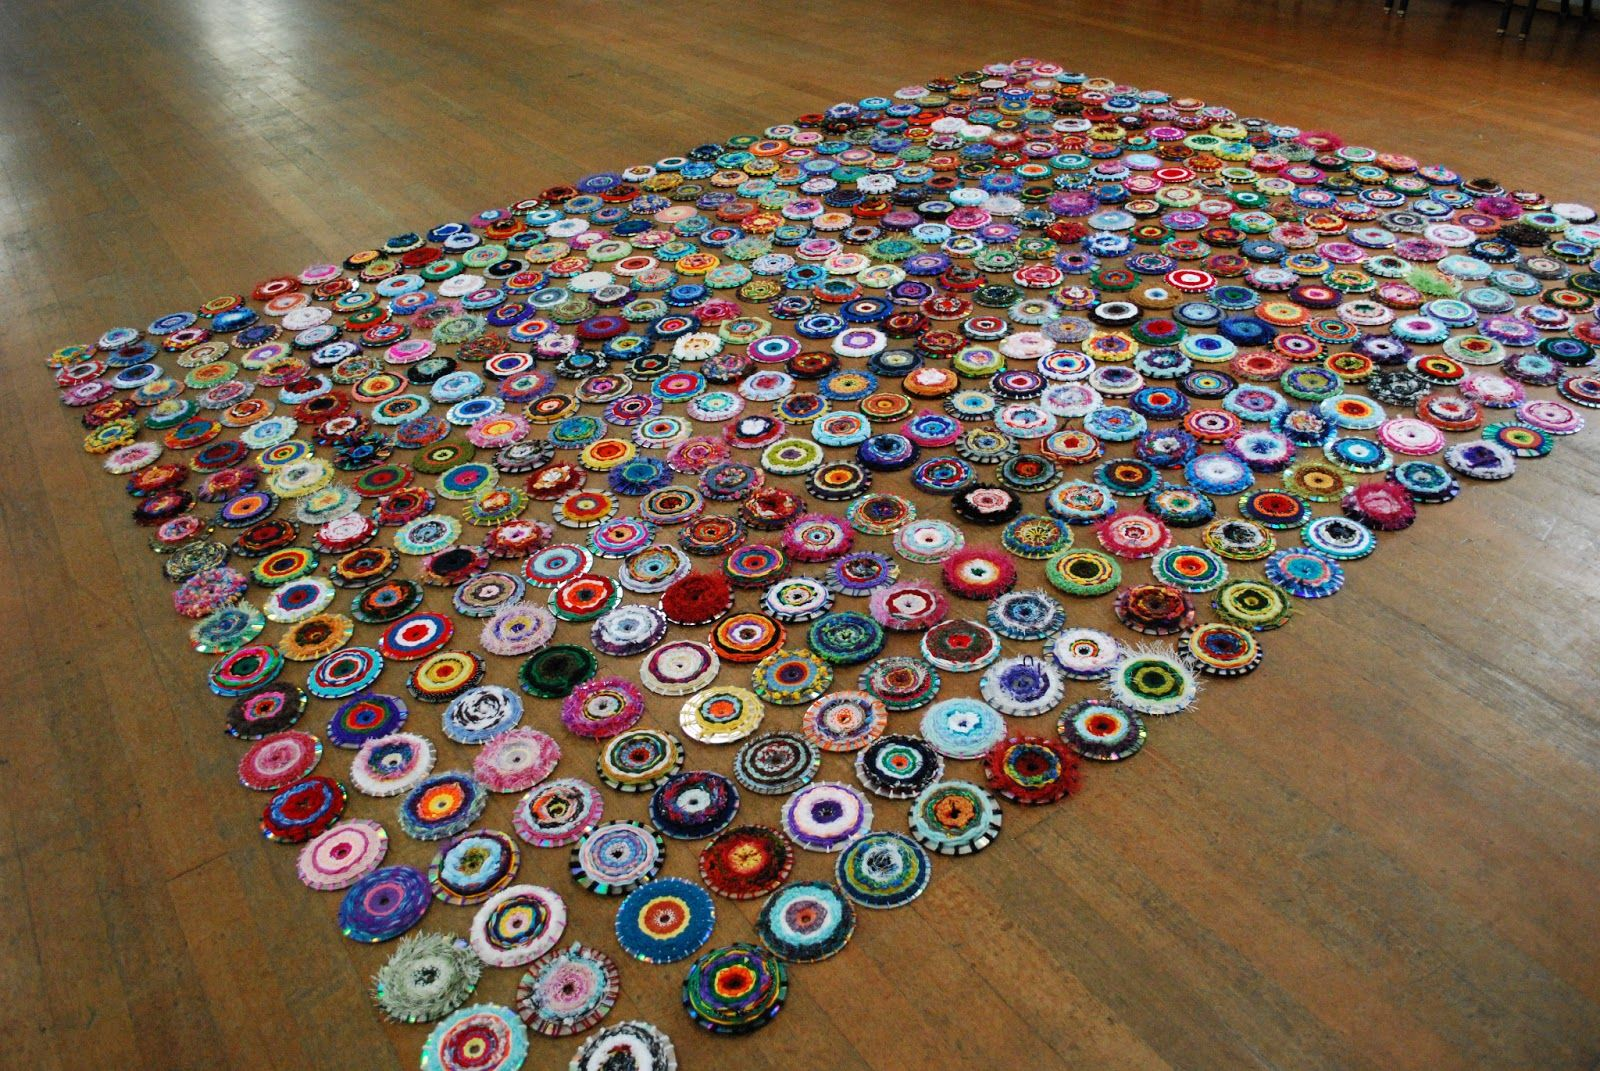 Arts and crafts projects for adults #5